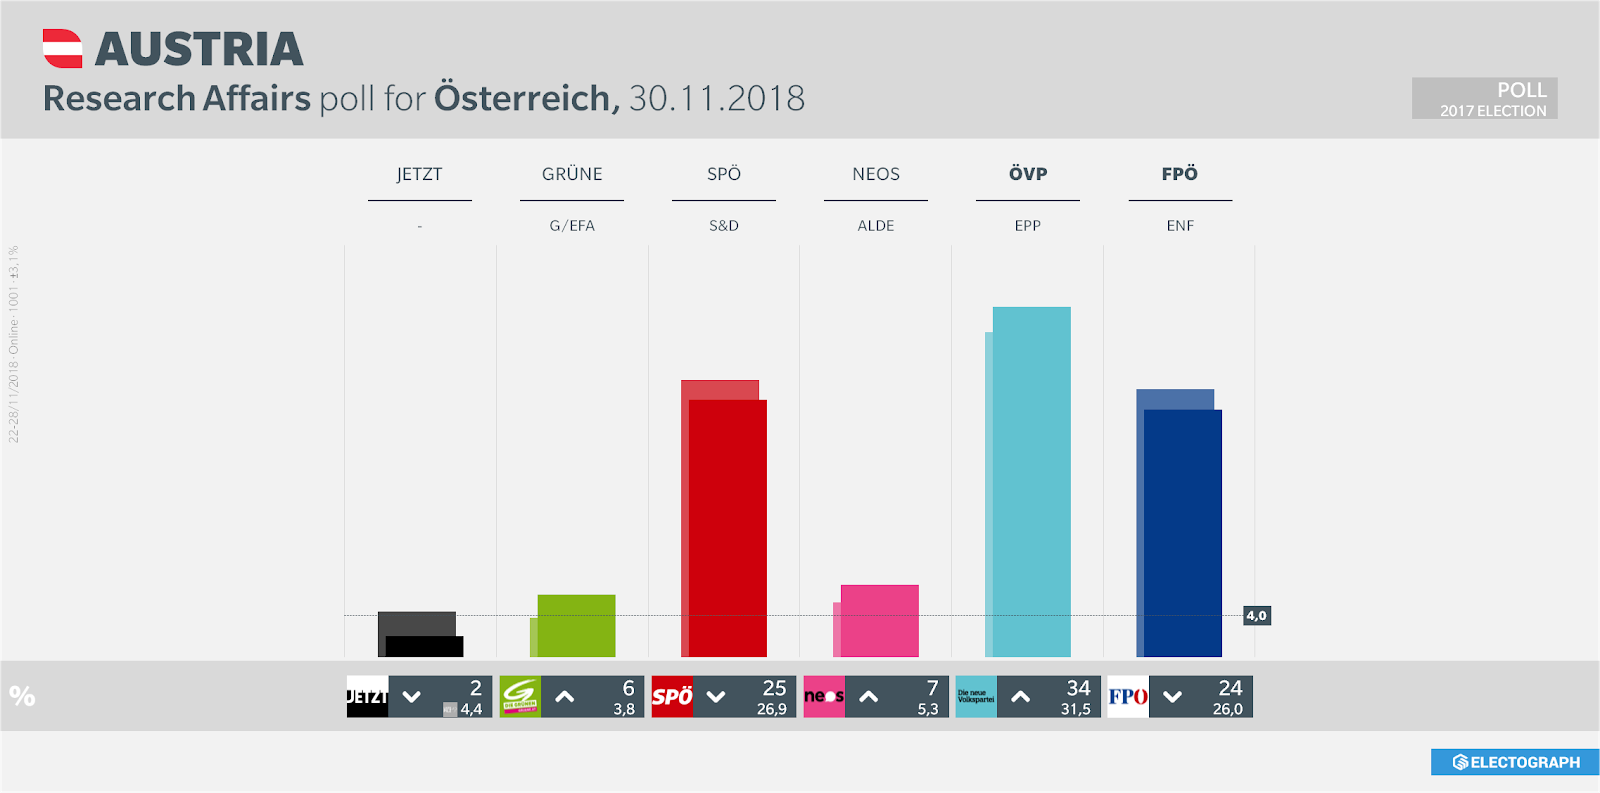 AUSTRIA: Research Affairs poll chart for Österreich, 30 November 2018